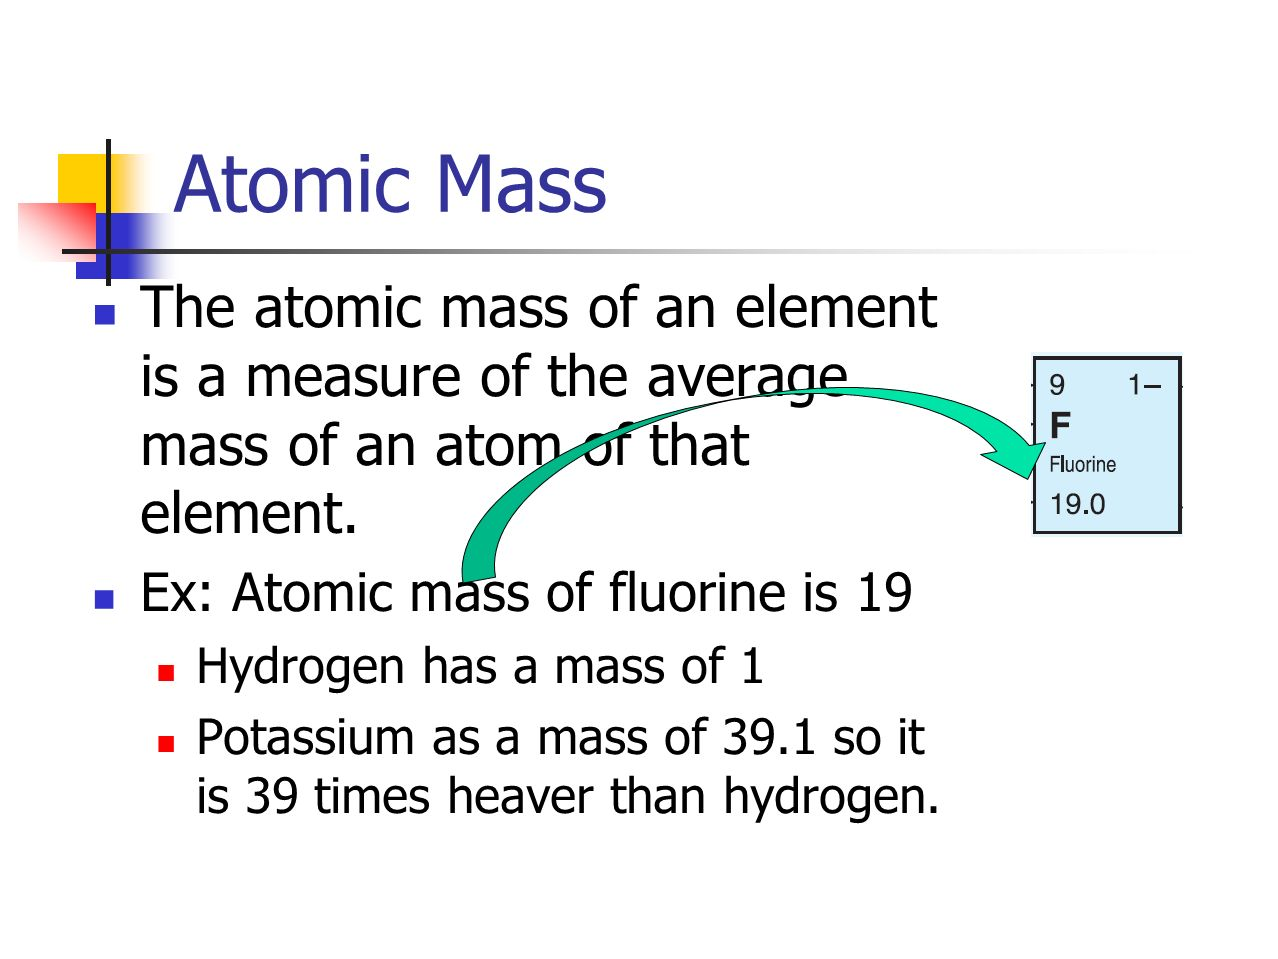 Atomic Mass The atomic mass of an element is a measure of the average mass of an atom of that element.